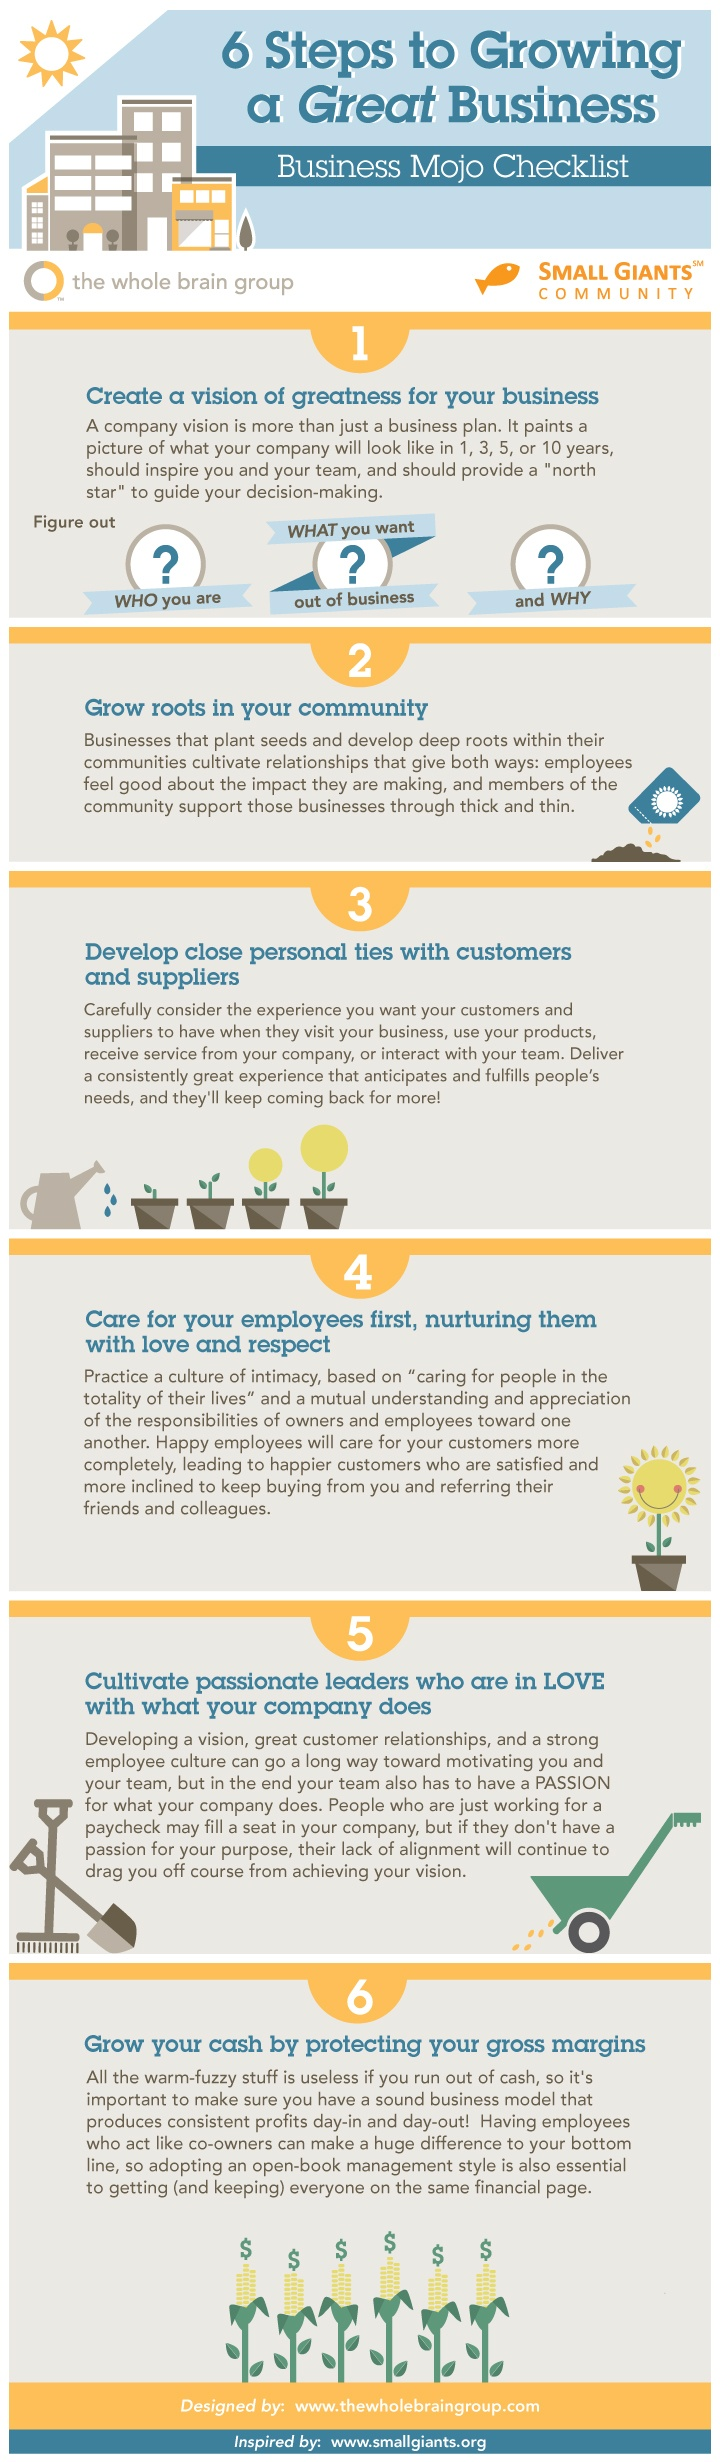 6-Steps-to-Growing-a-Great-Business-NB